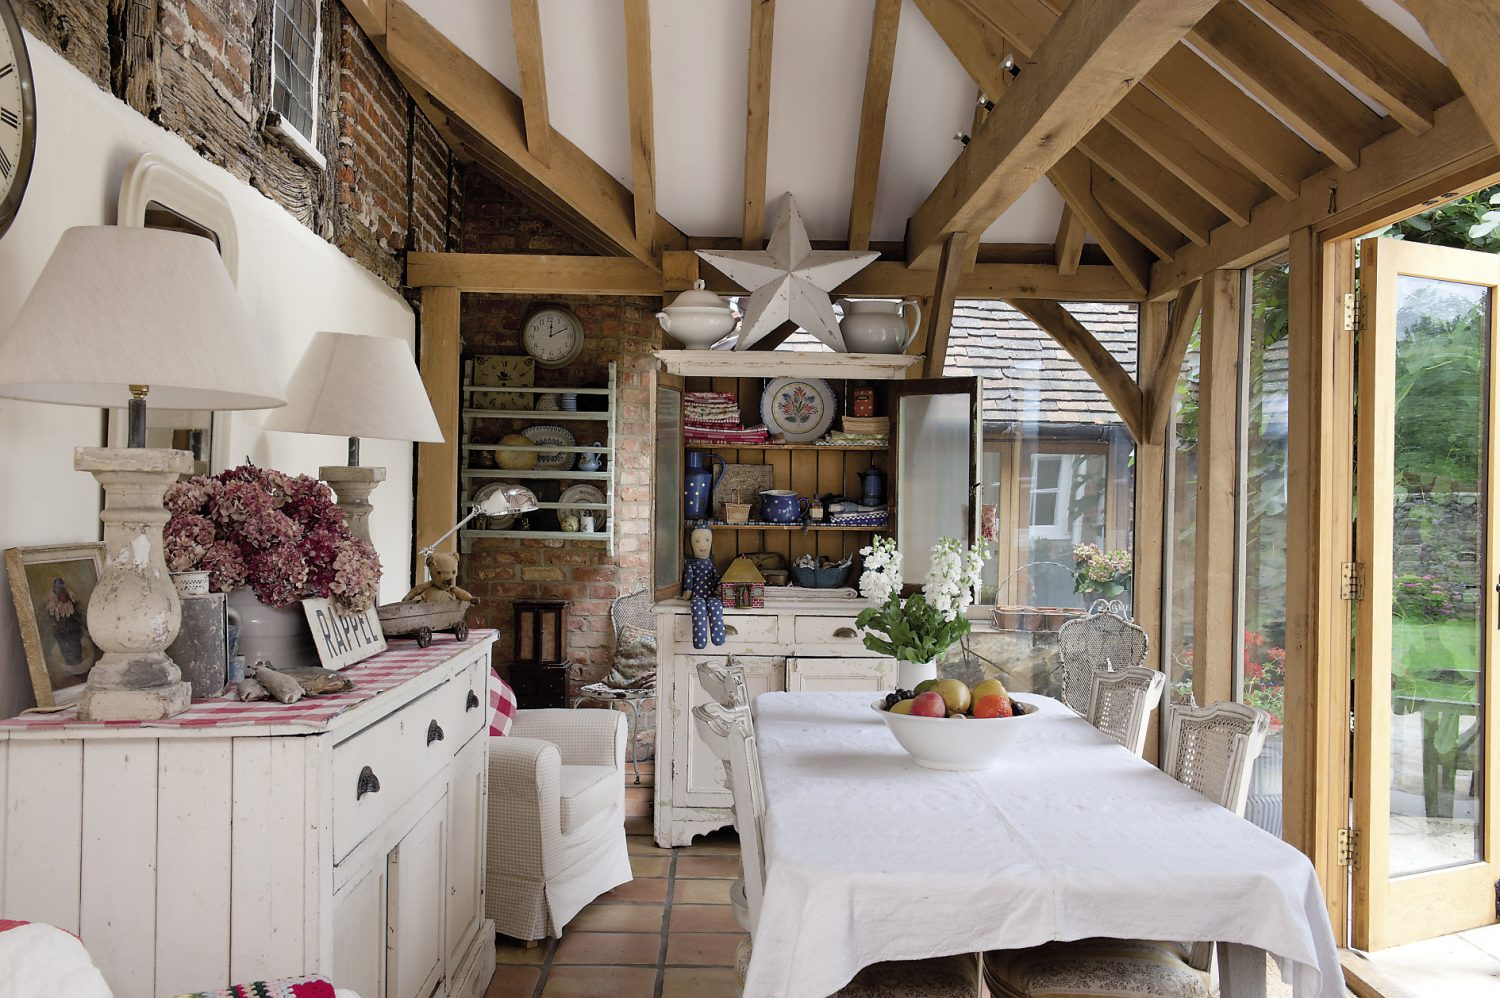 The oak-framed garden room extension at the back of the house brings a wonderful feeling of light and height to the ground floor. The weatherboarding has been removed from what would have been the outside wall, exposing original timber frame and the old bricks, which makes them into a charming feature of the room